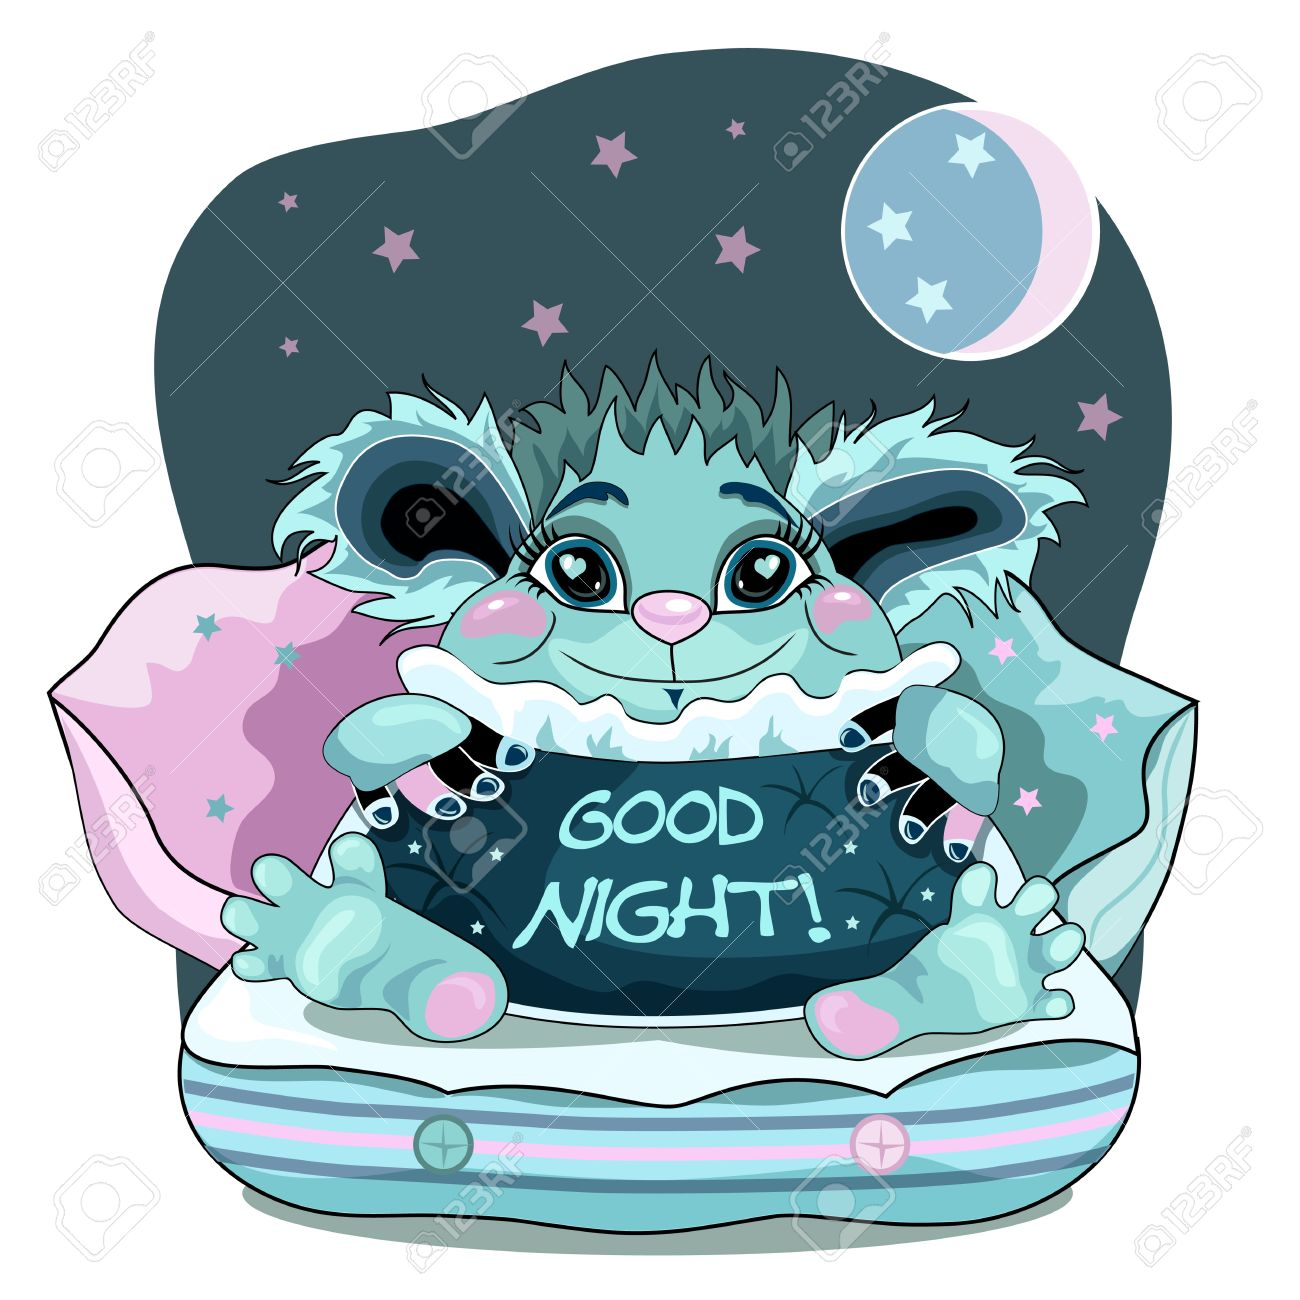 Cute good night background with blue friendly monster. Stock Vector - 12825487